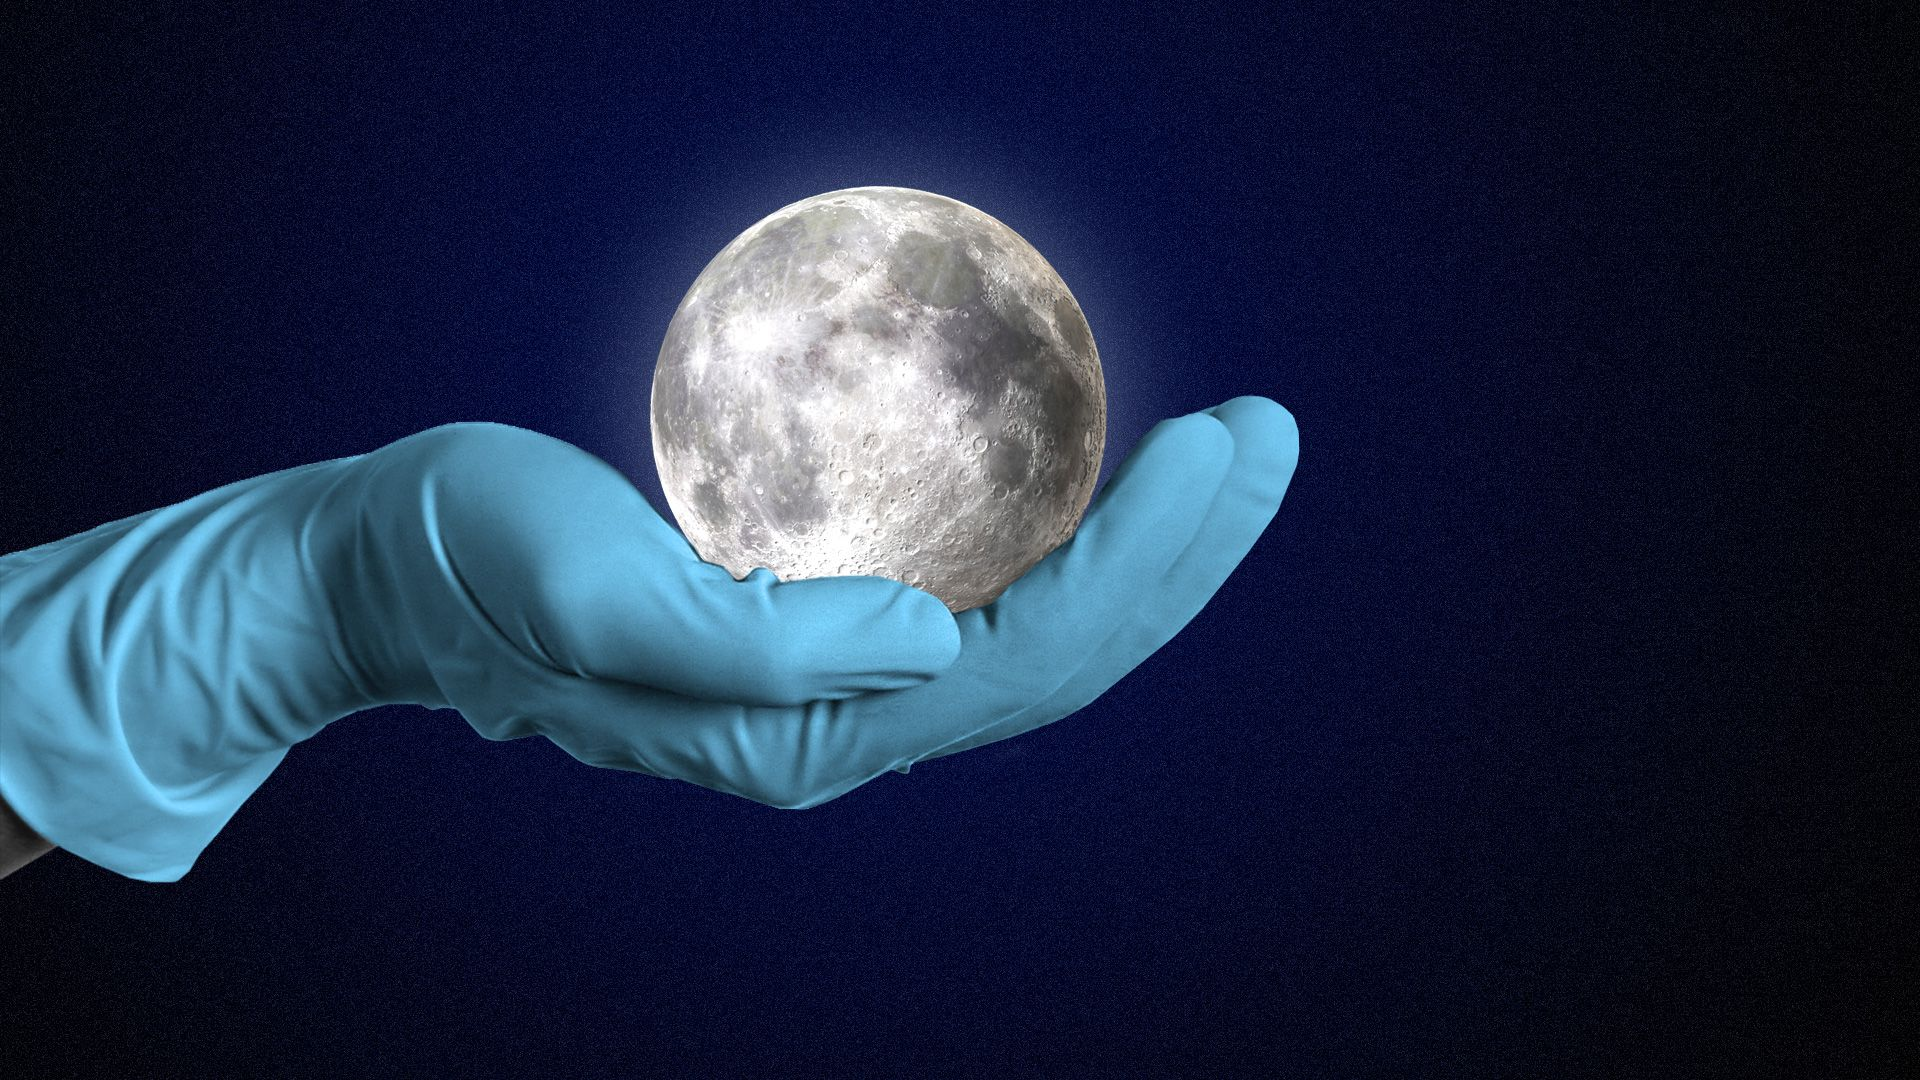 The science case for returning to the Moon